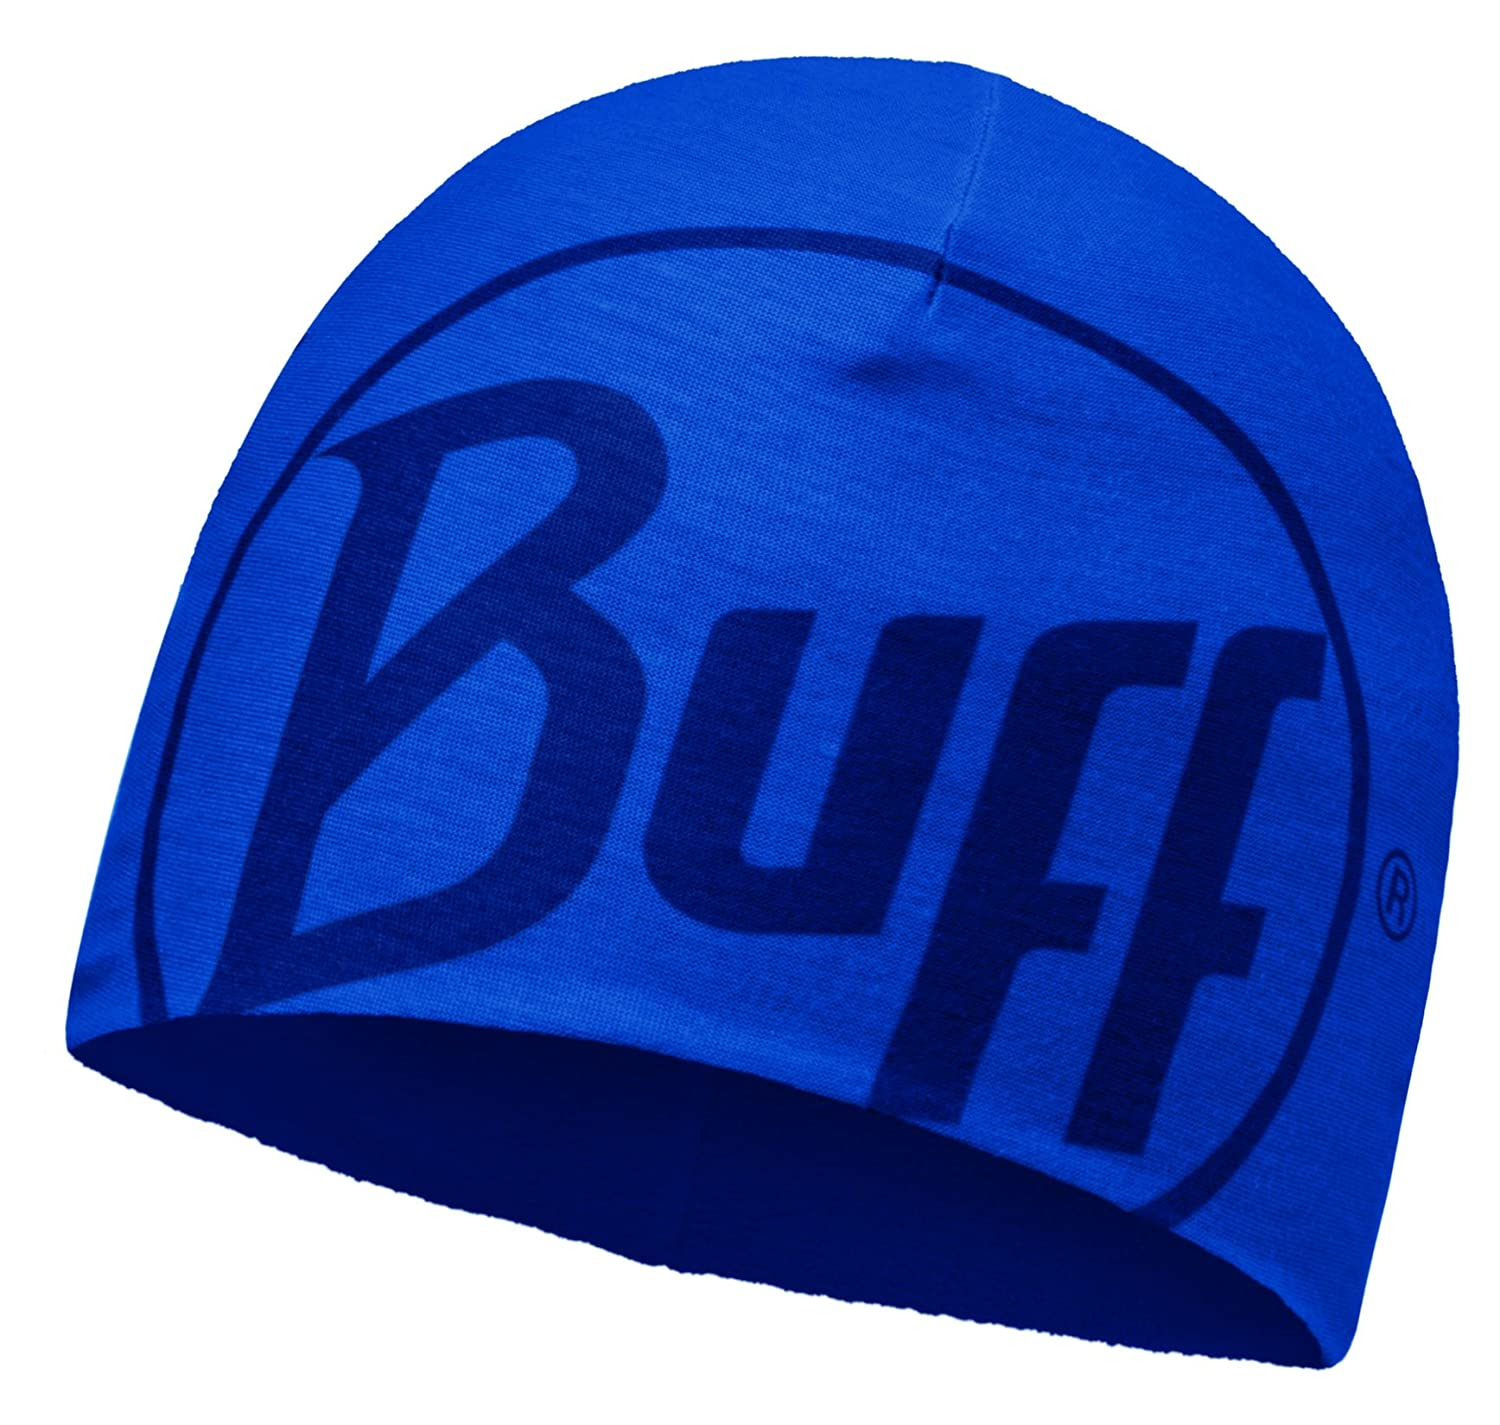 Original Buff Microfibra & Polar Gorro Buff Logo Azul Skydiver - Polar Gorro Buff para Unisex, Color Multicolor, Adulto S.A 111400.703.10.00